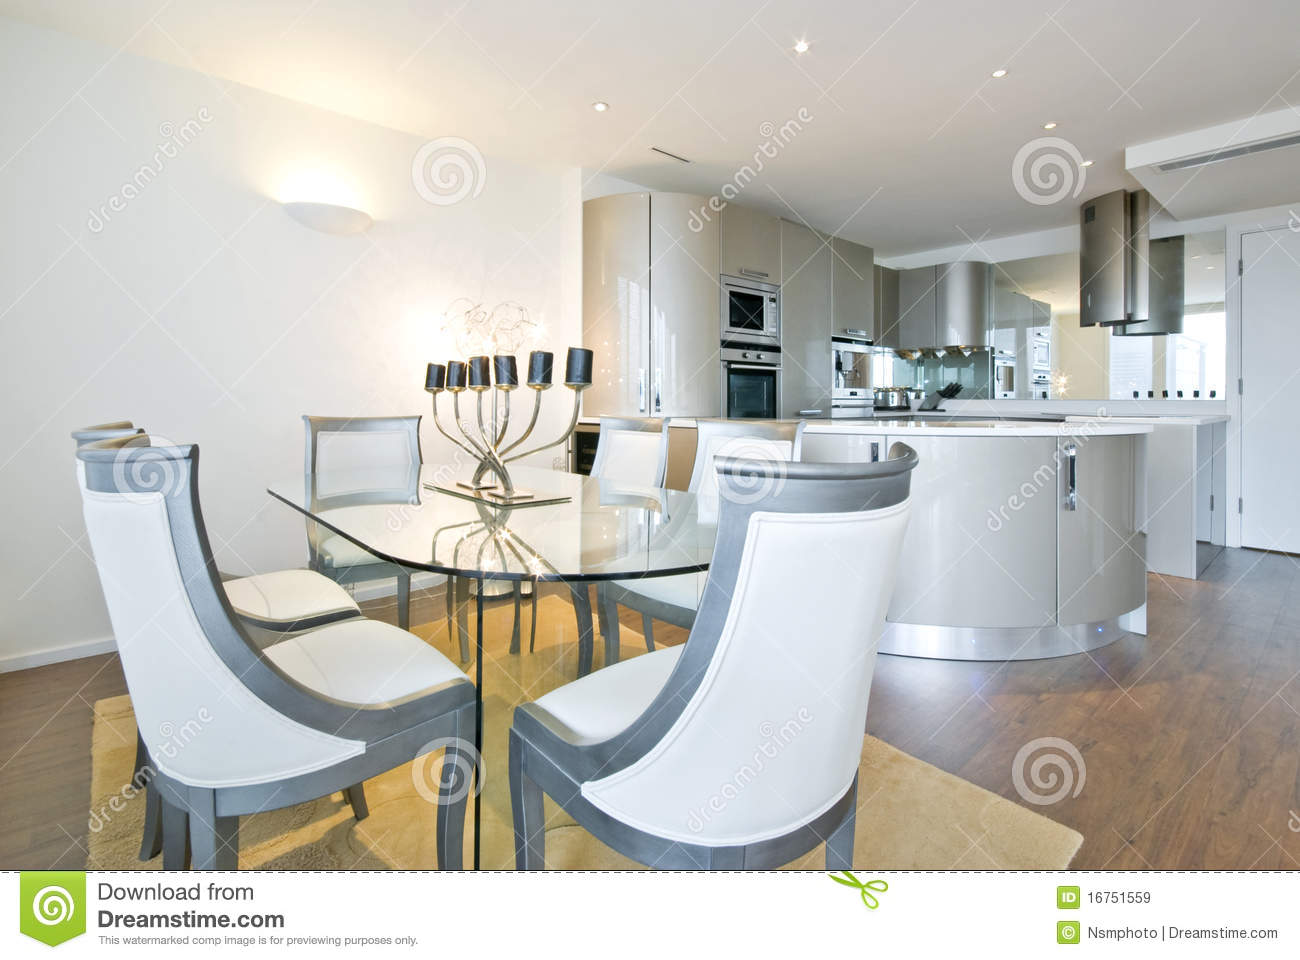 Ultra Modern Designer Kitchen With Dining Room Stock Image  : ultra modern designer kitchen dining room 16751559 from www.dreamstime.com size 1300 x 960 jpeg 110kB